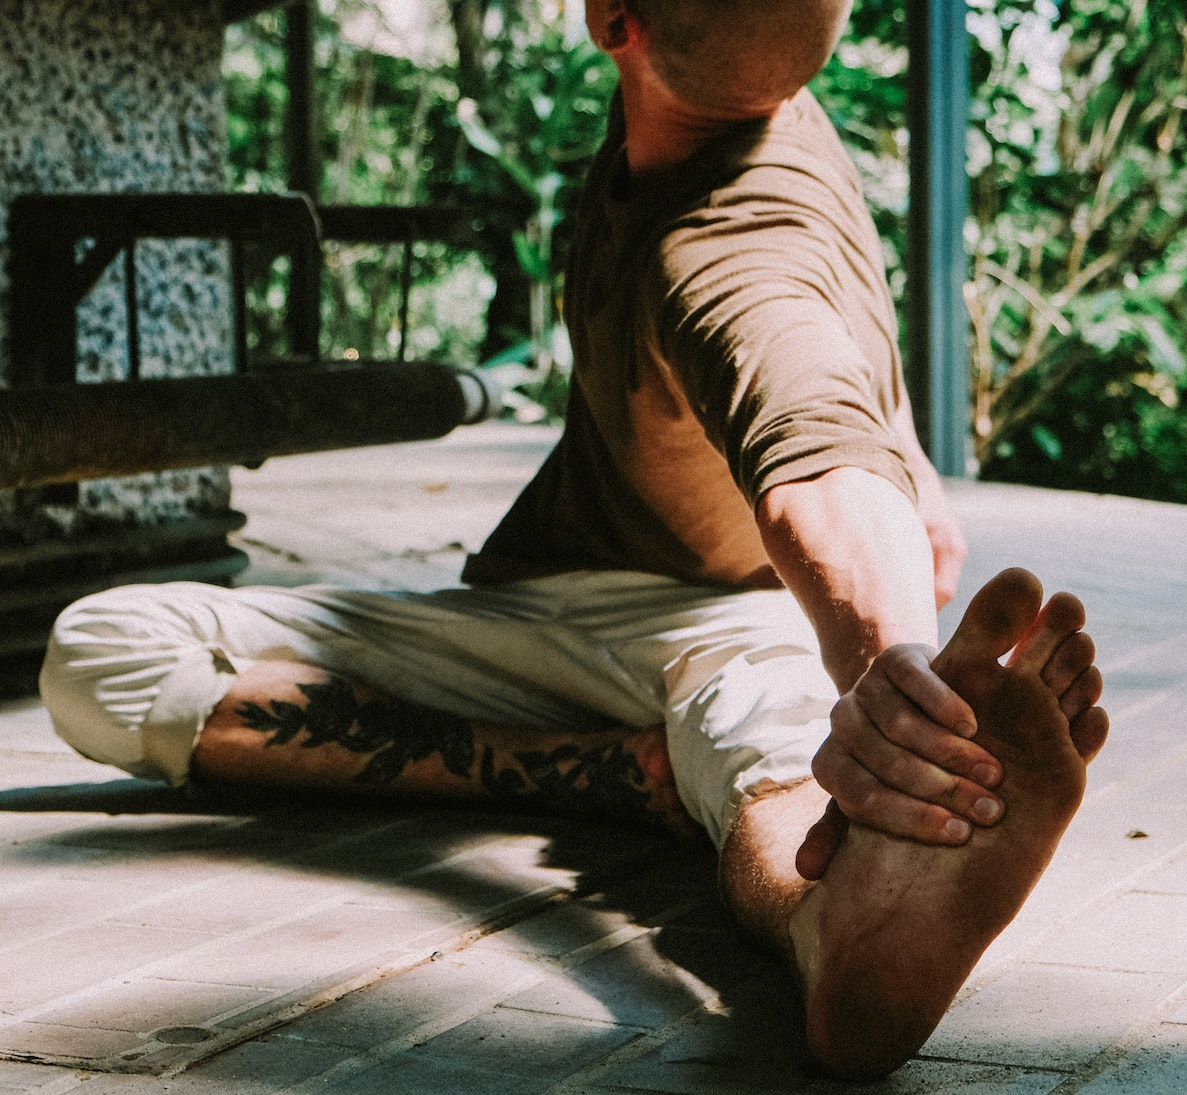 Man stretching in bare dirty feet